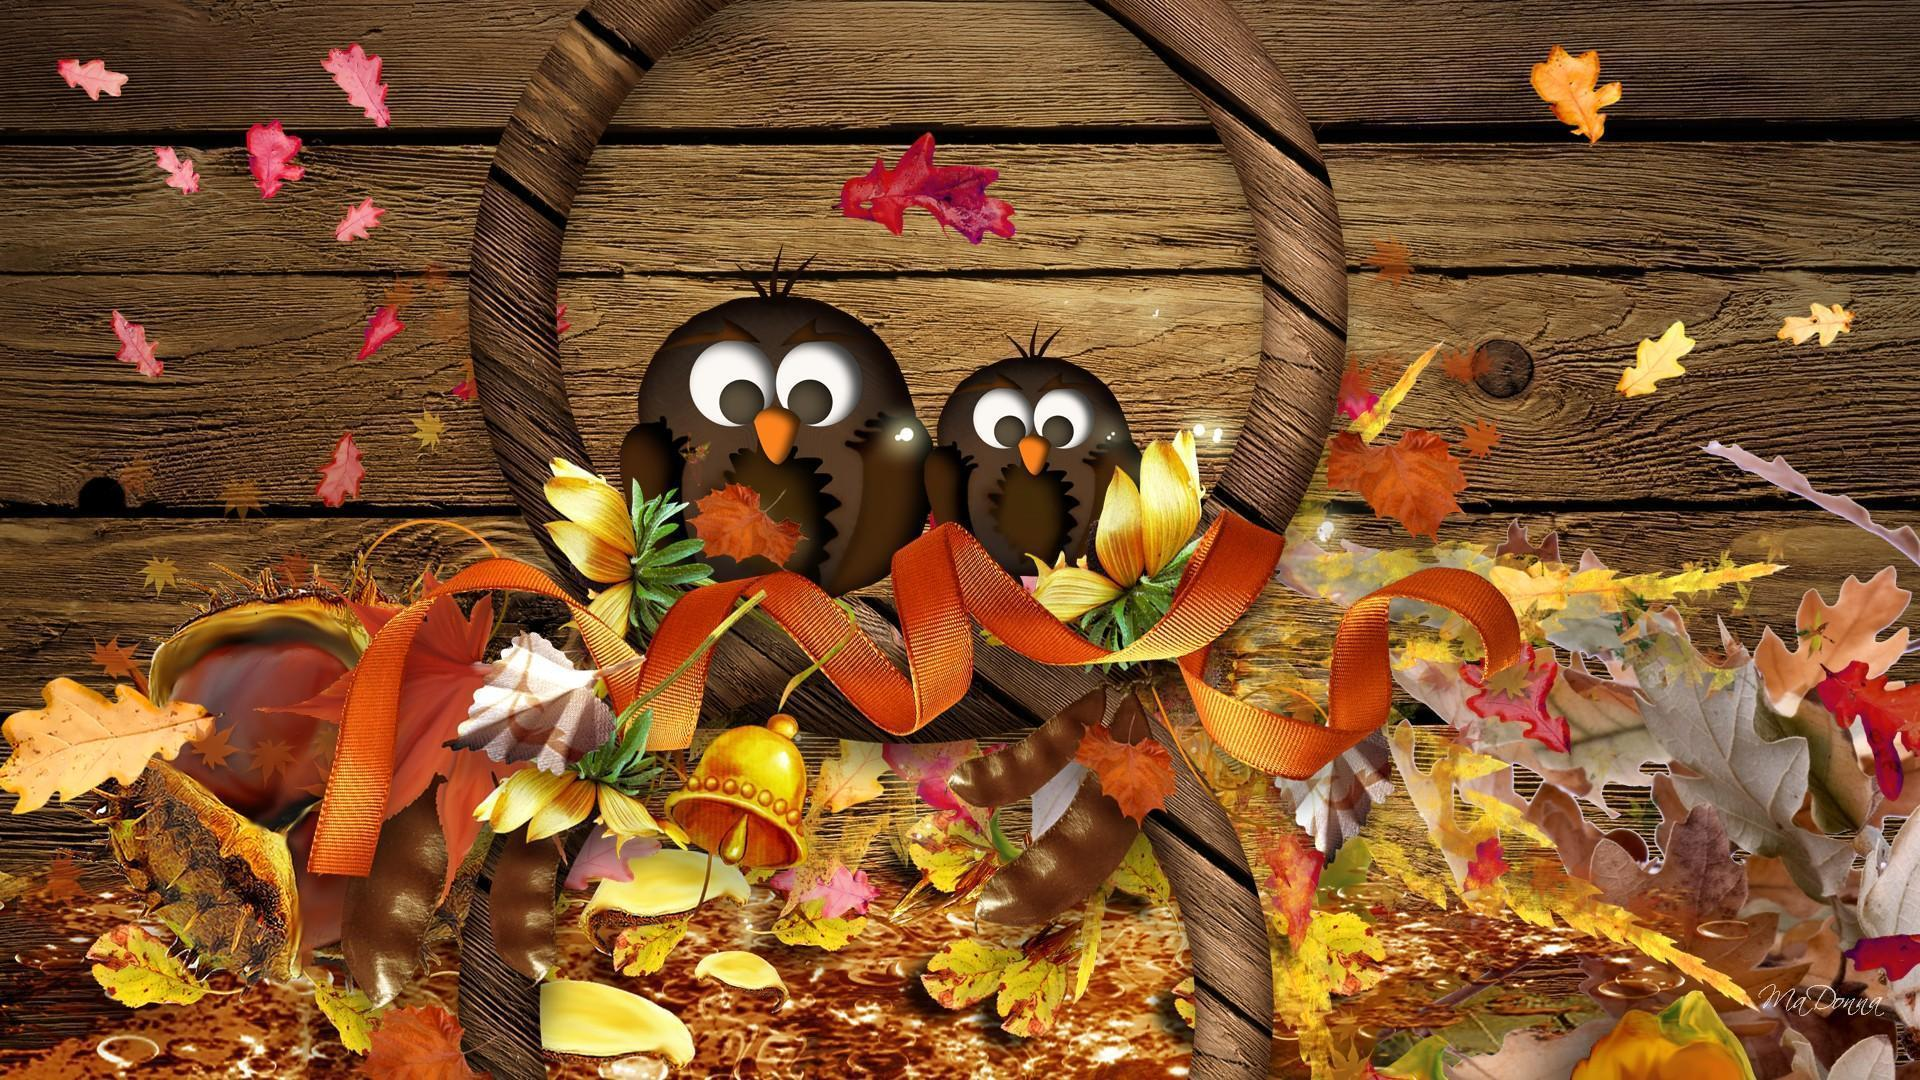 Cute Thanksgiving Wallpapers - Wallpaper Cave